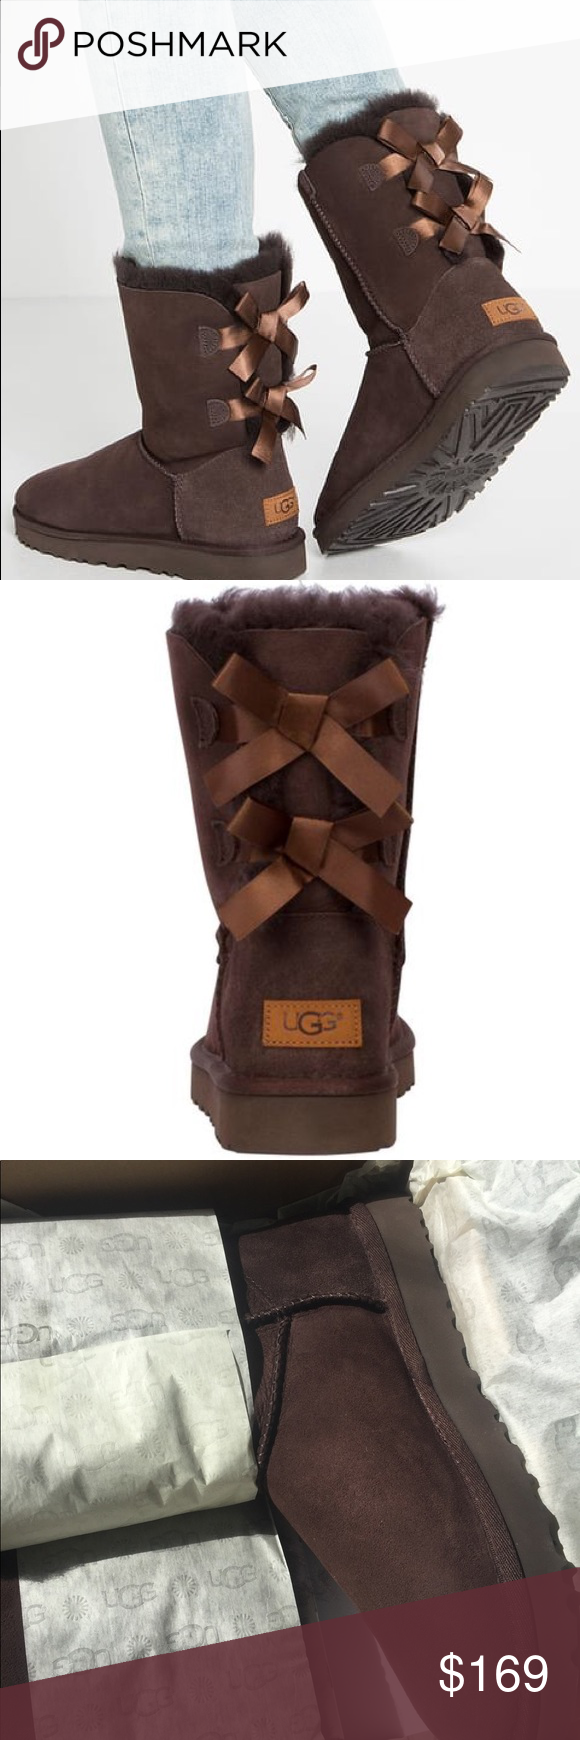 a802e3ba504 NIB UGG Womens Bailey Bow II Boots in Chocolate The Bailey Bow Boot ...